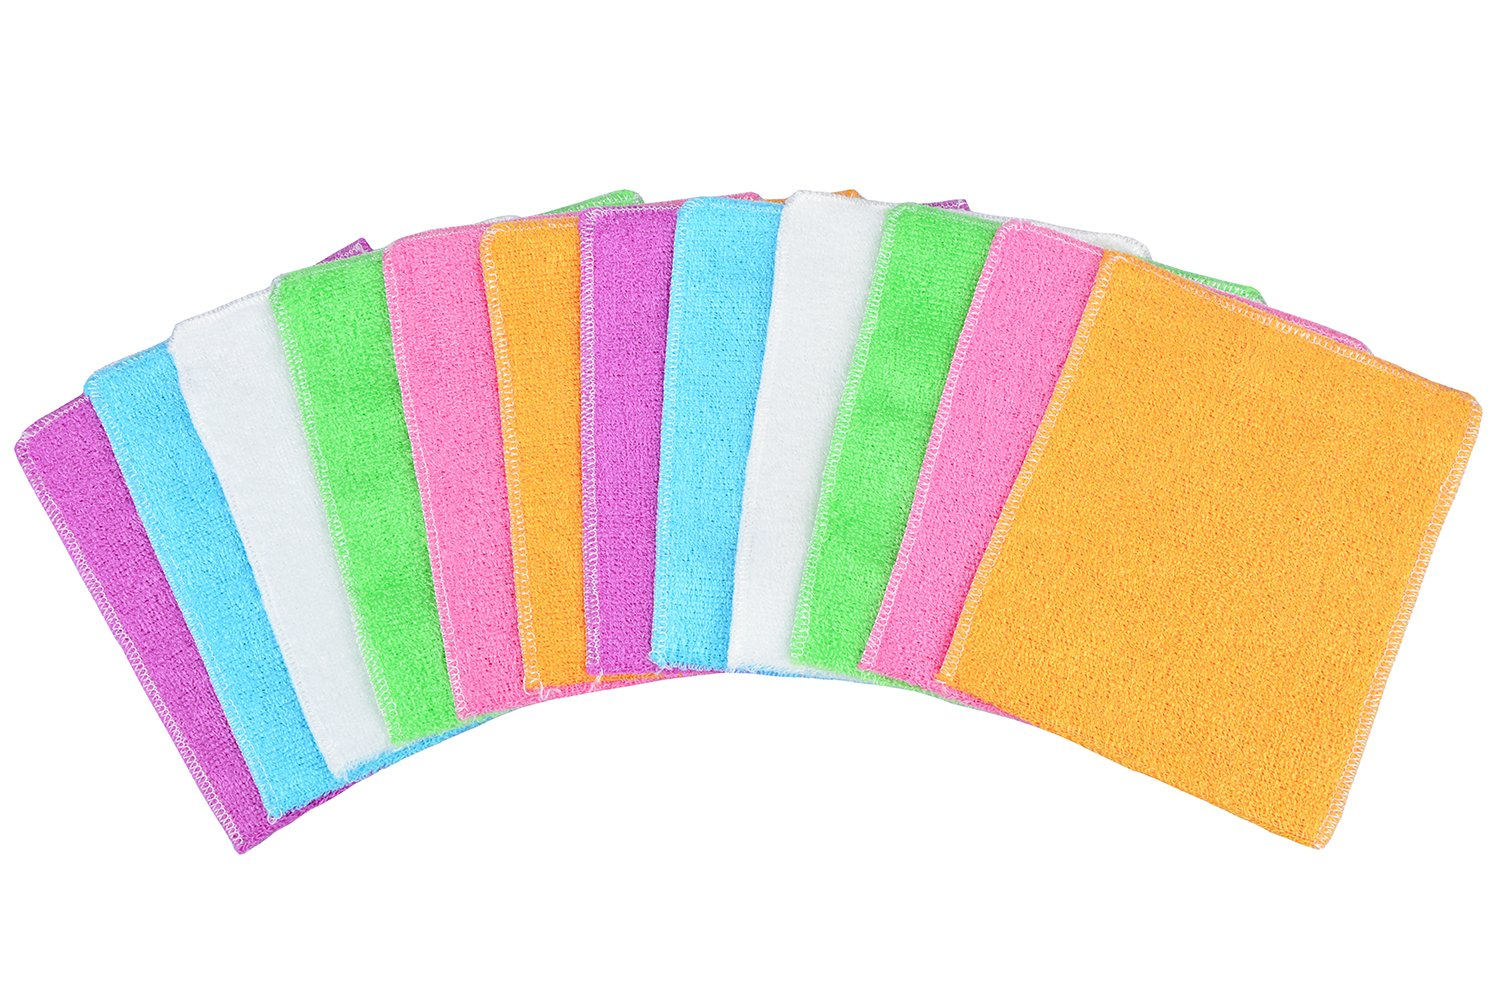 Mayouth Dish Towels Bamboo Fiber Dish Cloths Super Absorbent Kitchen Wash Cloth Dish Rags for Washing Dishes Fast Drying Cleaning Cloth (12-Pack)